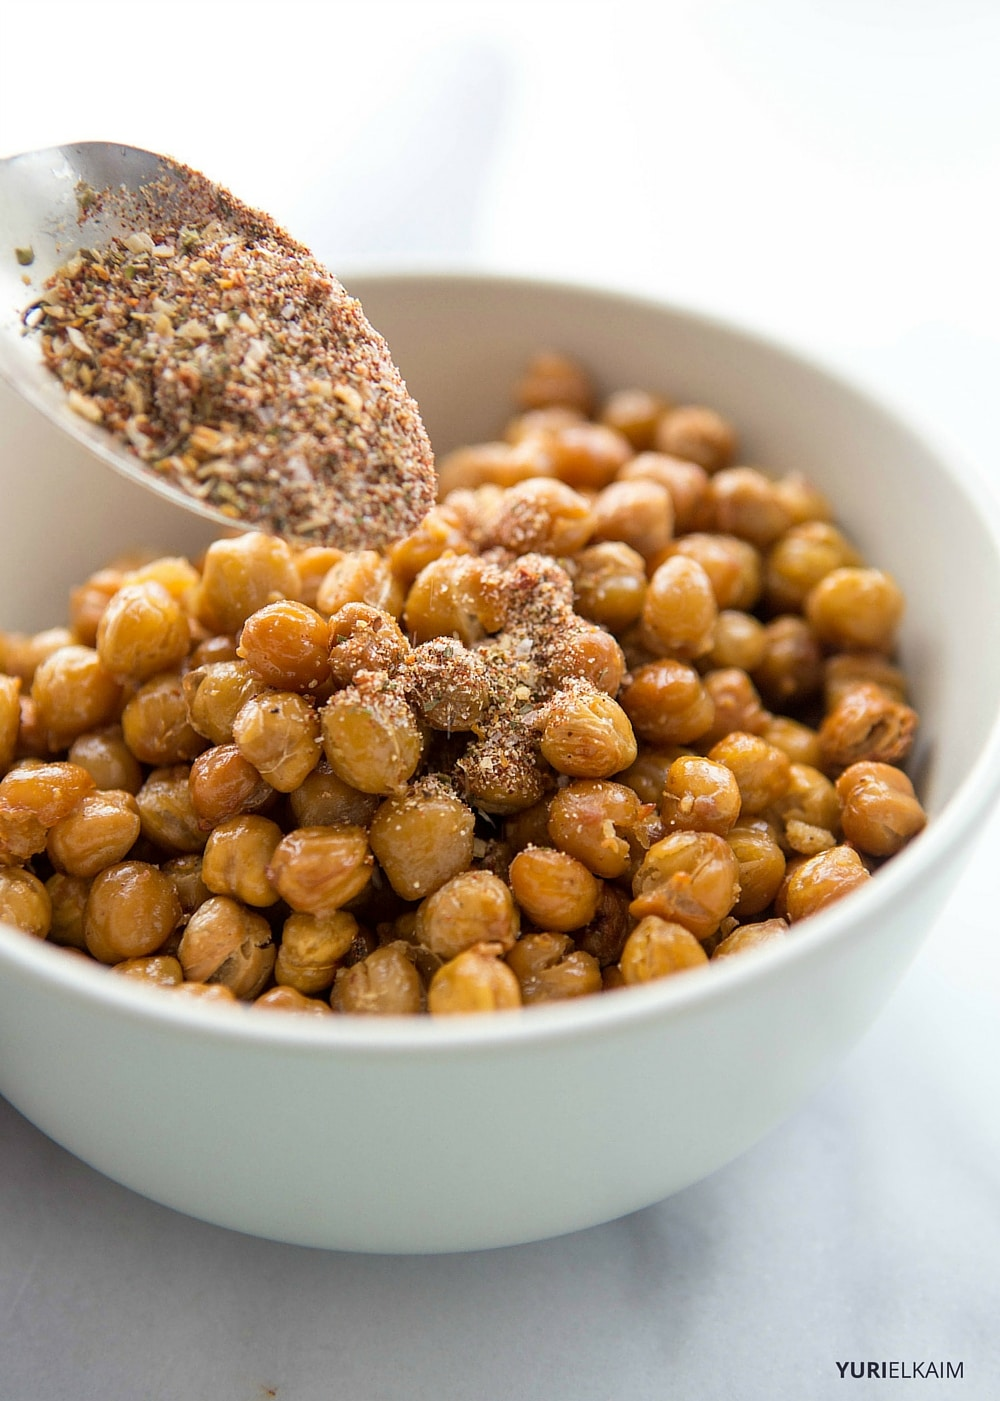 Spicy Garlic Oven-Roasted Chickpeas - Step 4